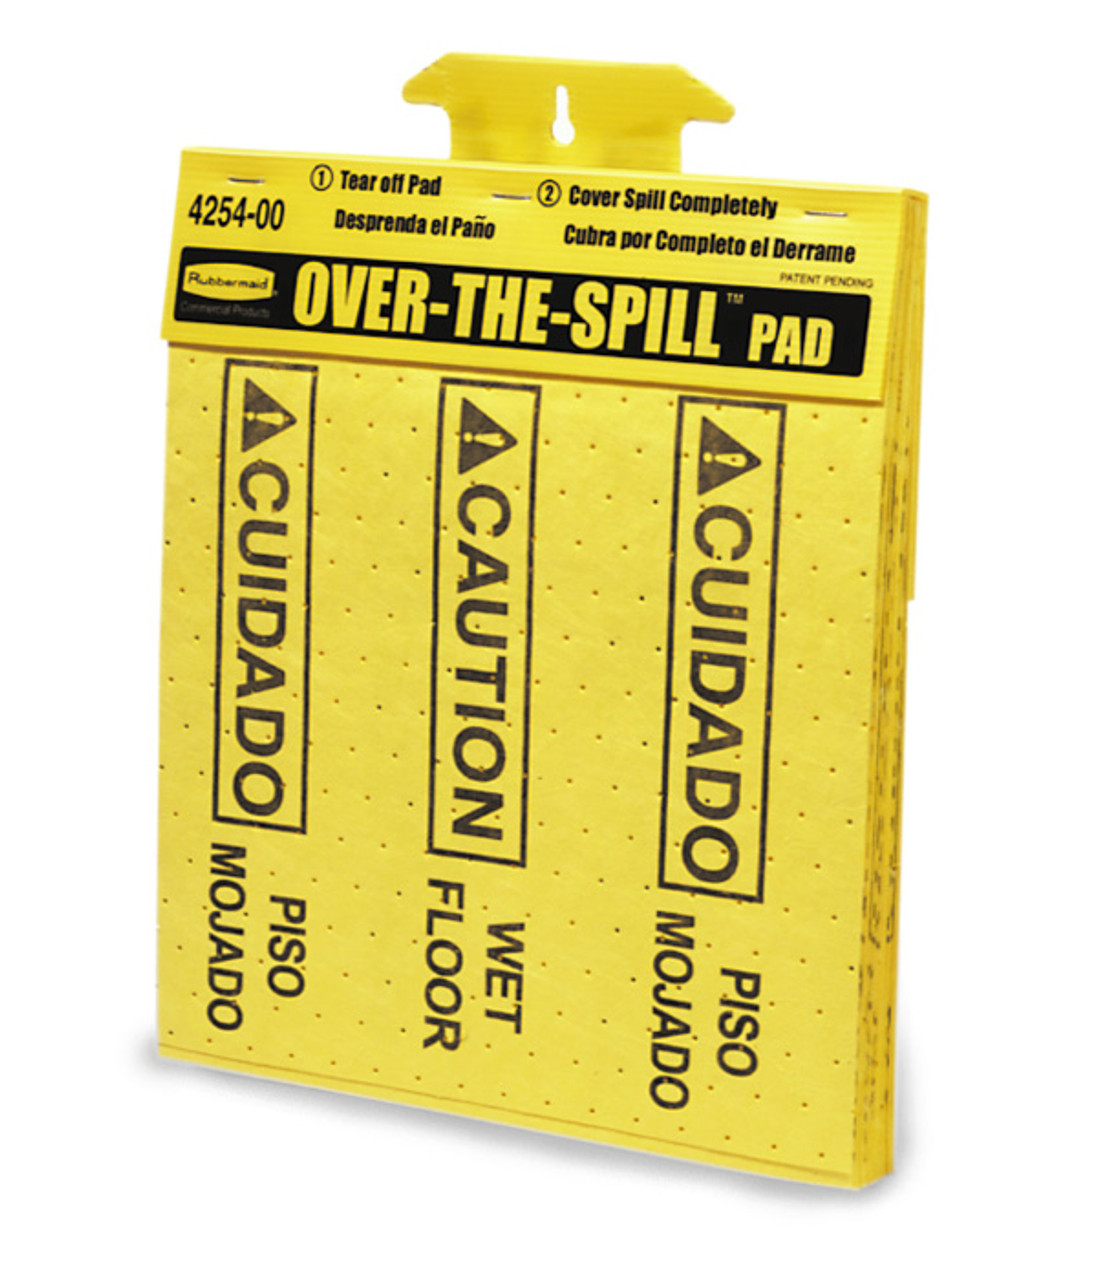 Over The Spill Pads come in a convenient tablet of 12 pads